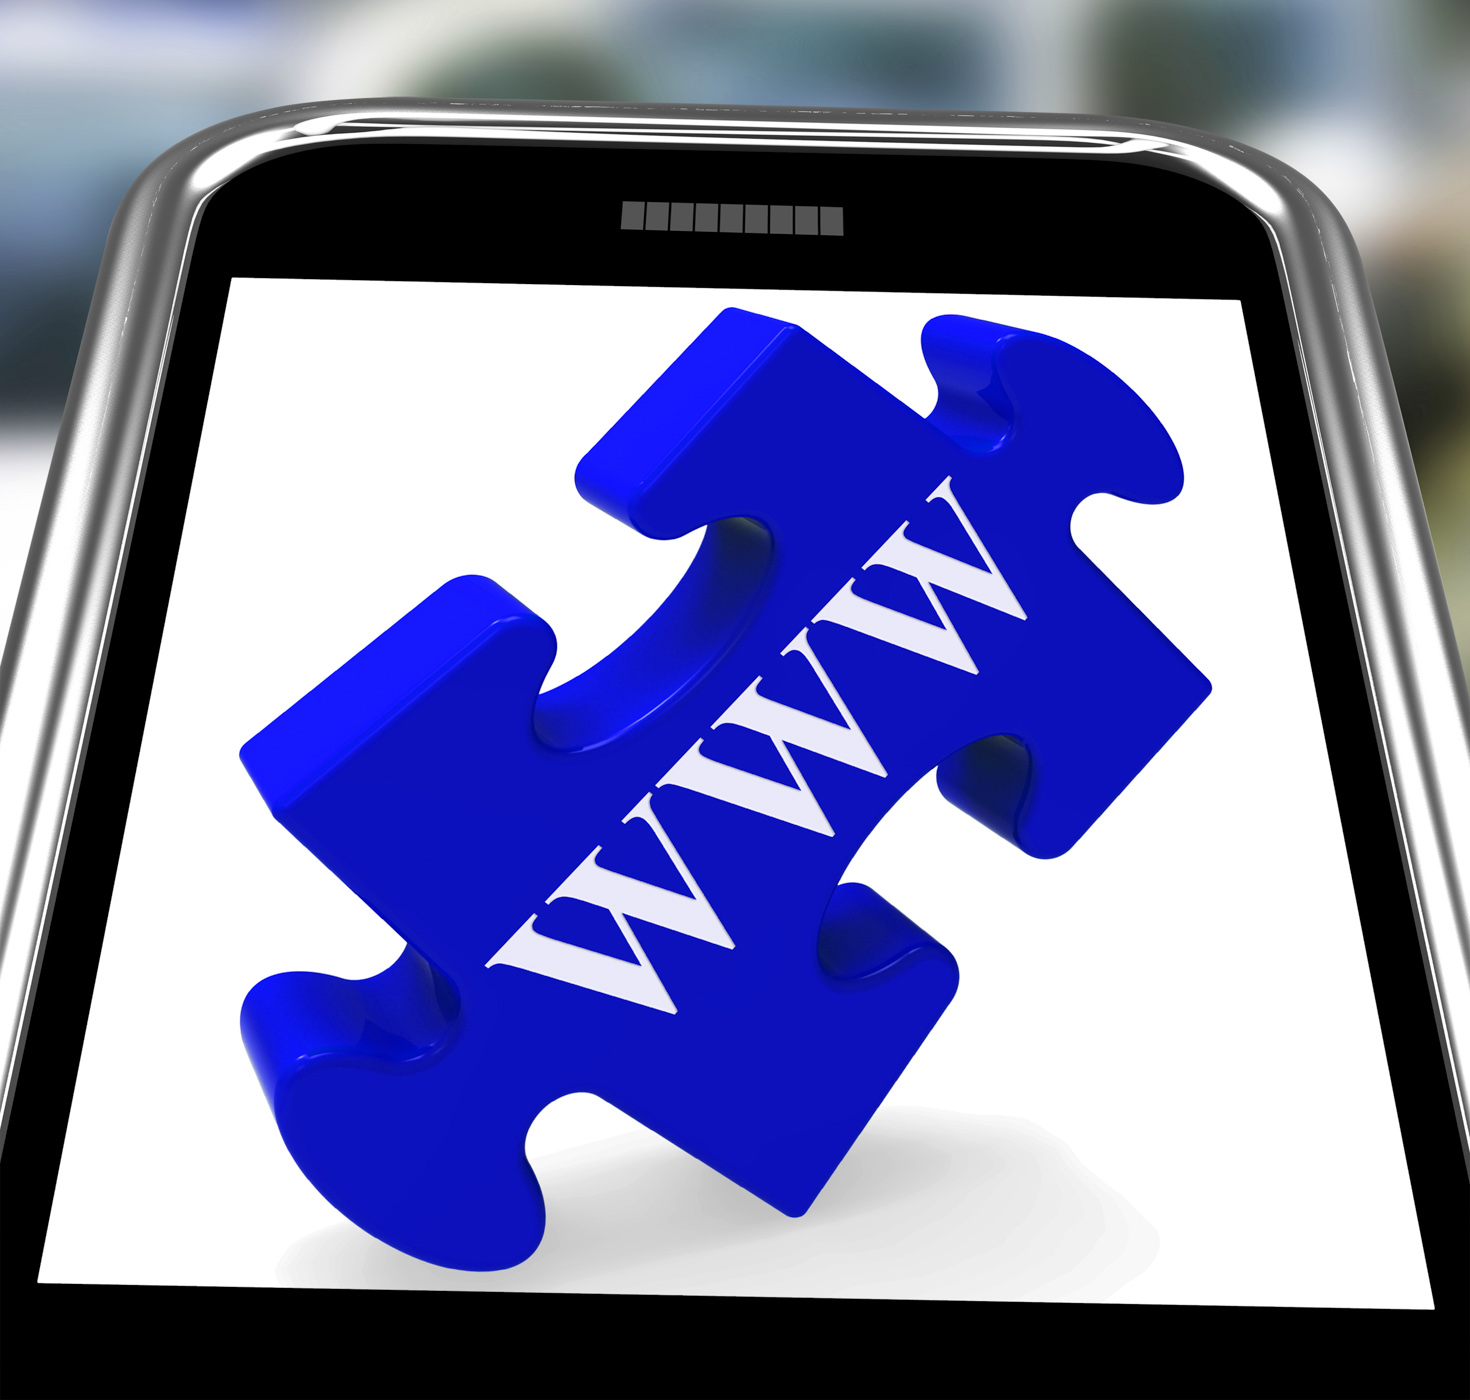 Www smartphone means internet network and websites photo